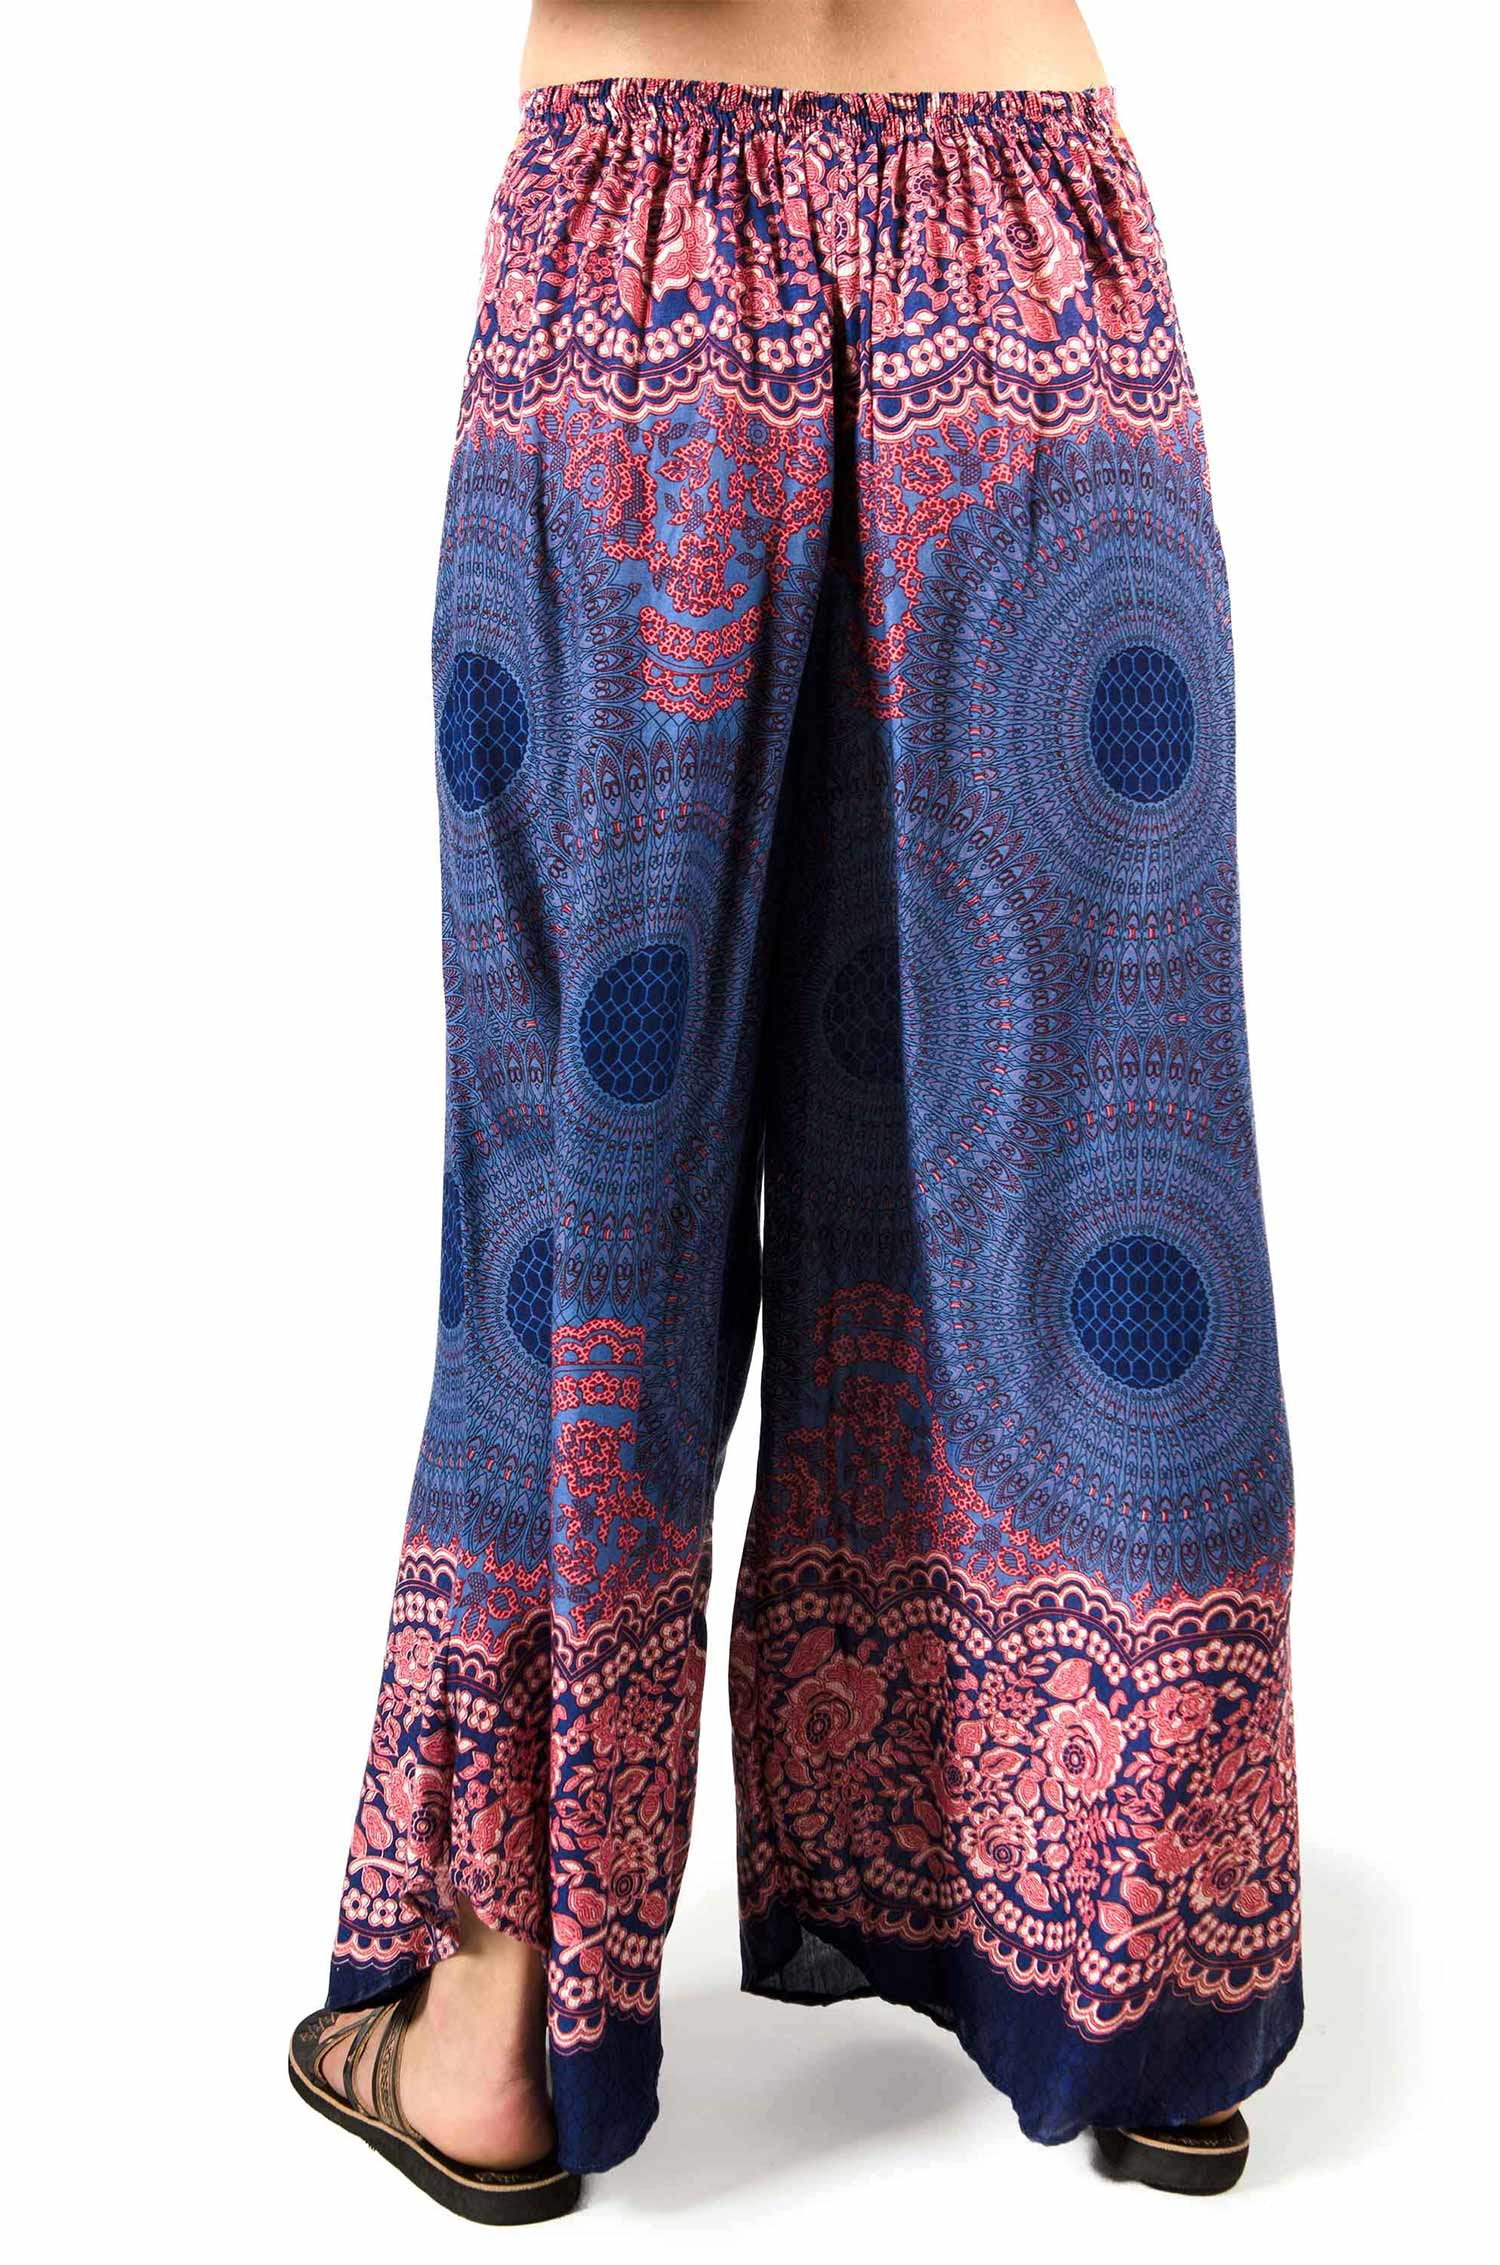 Honeycomb Print Wide Leg Pants - Blue - 3669B